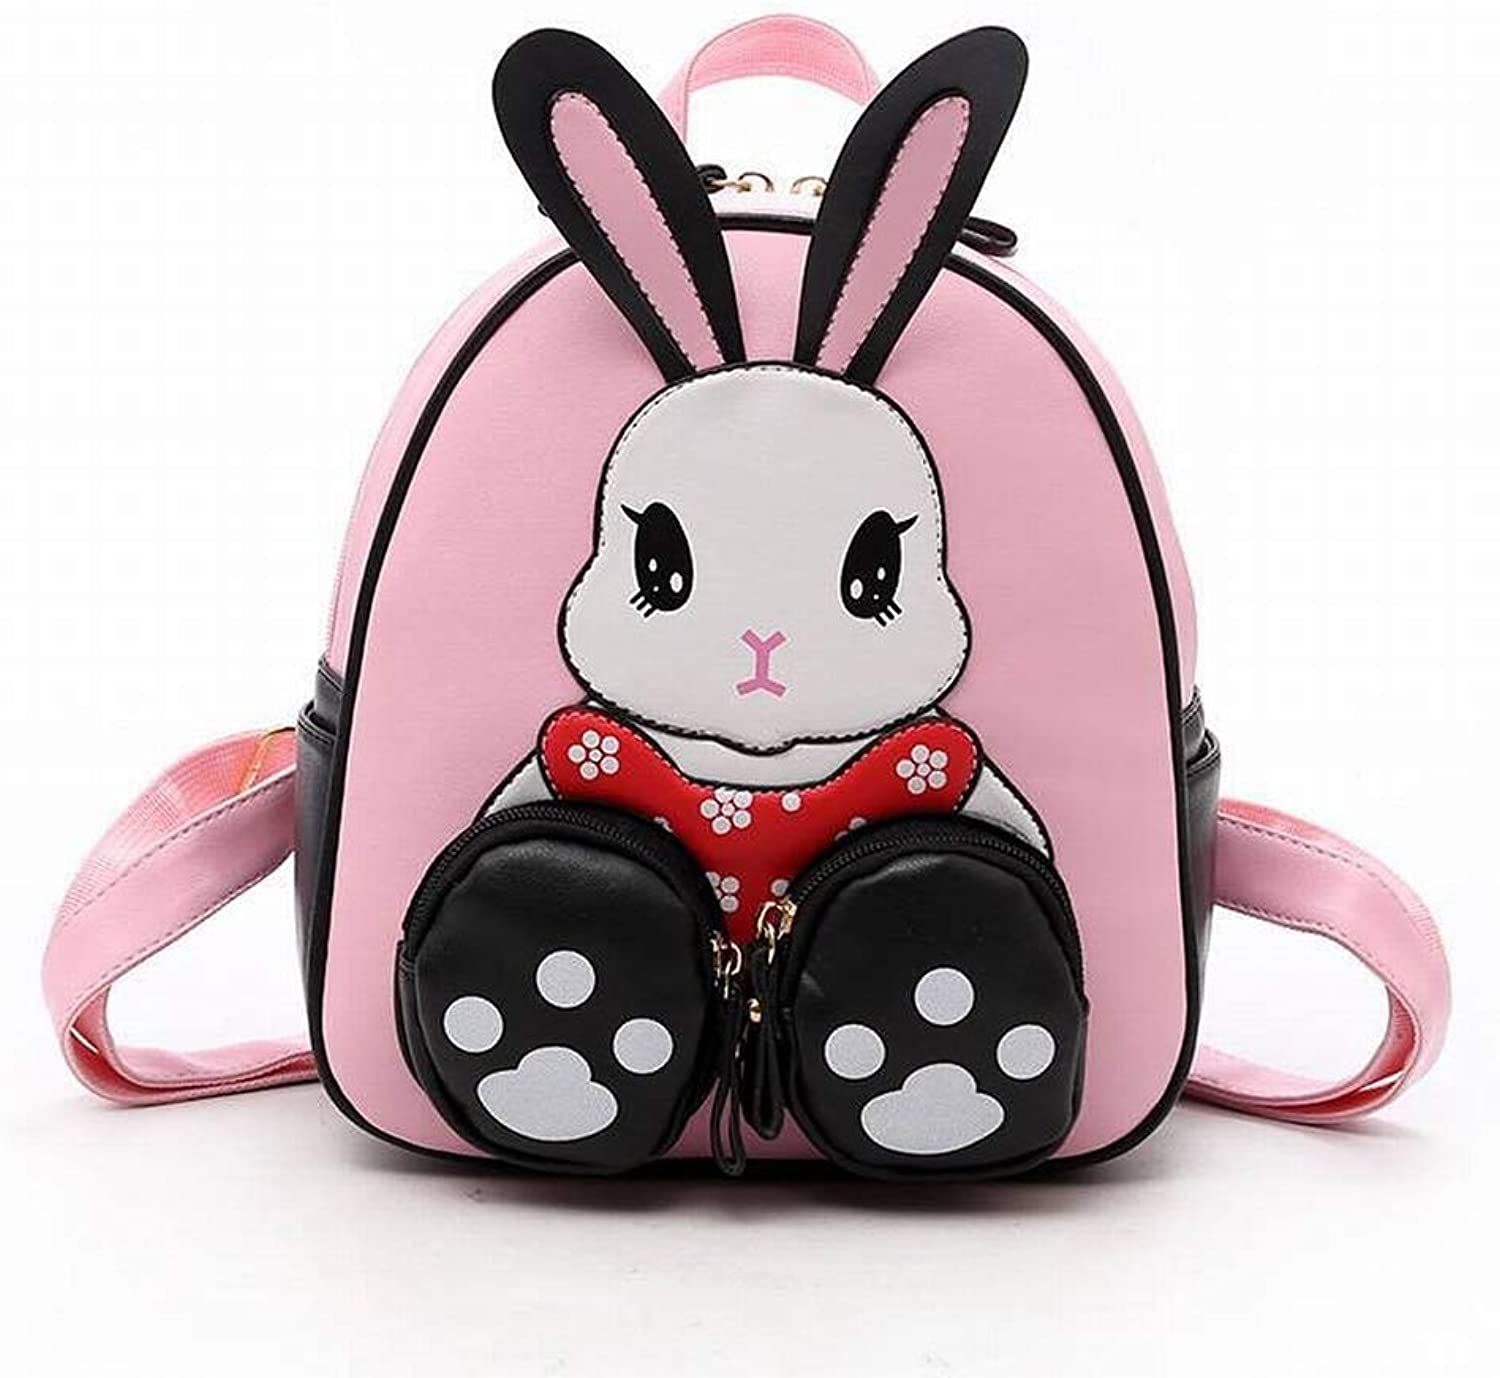 Creative Fashion MultiFunctional Ethnic Style Embroidered Bag Embroidered Canvas All Match Women's Student Bag Backpack Backpack for Women, Red Lotus